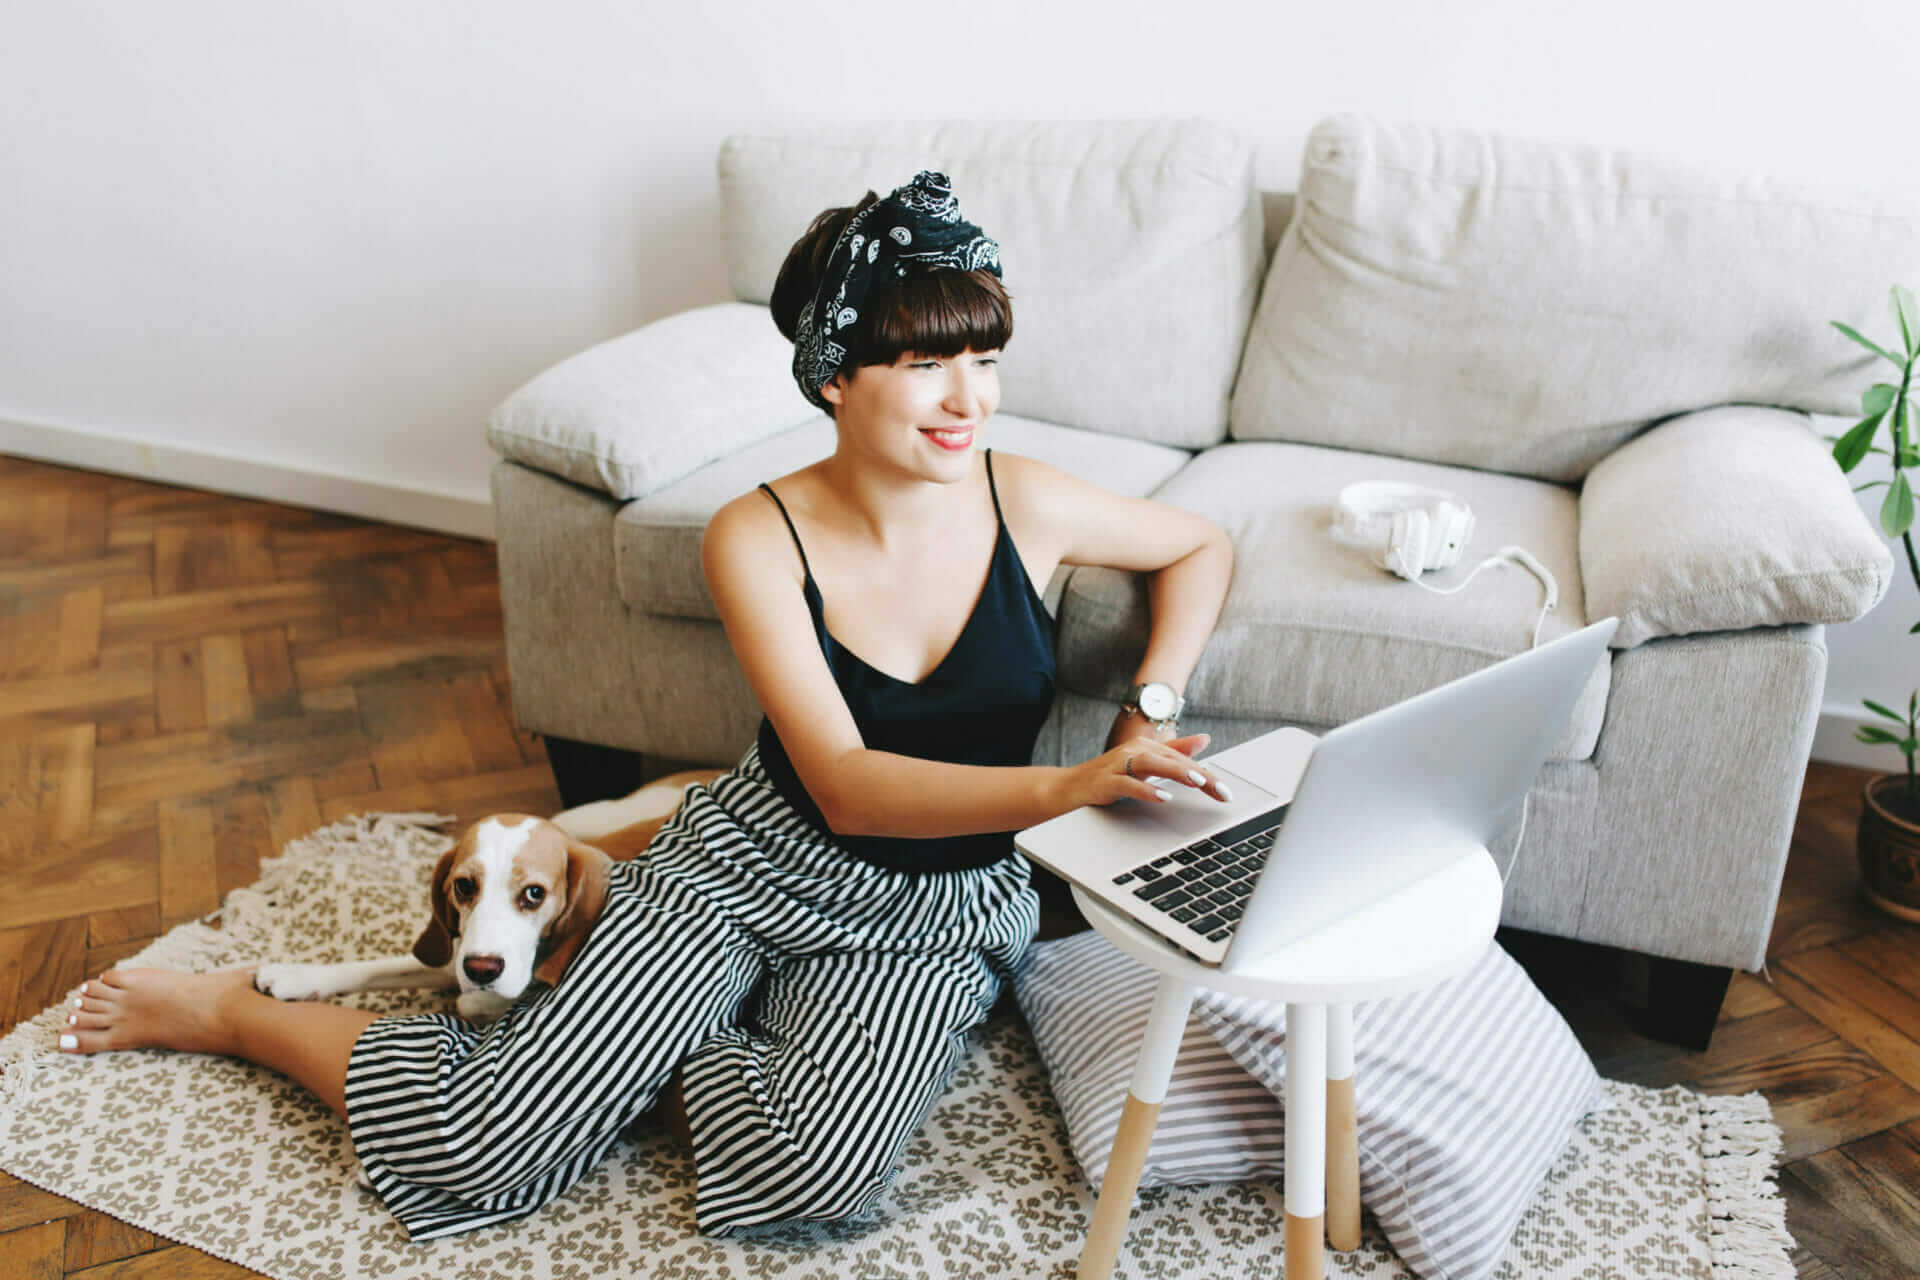 A photo of a woman using a laptop at home